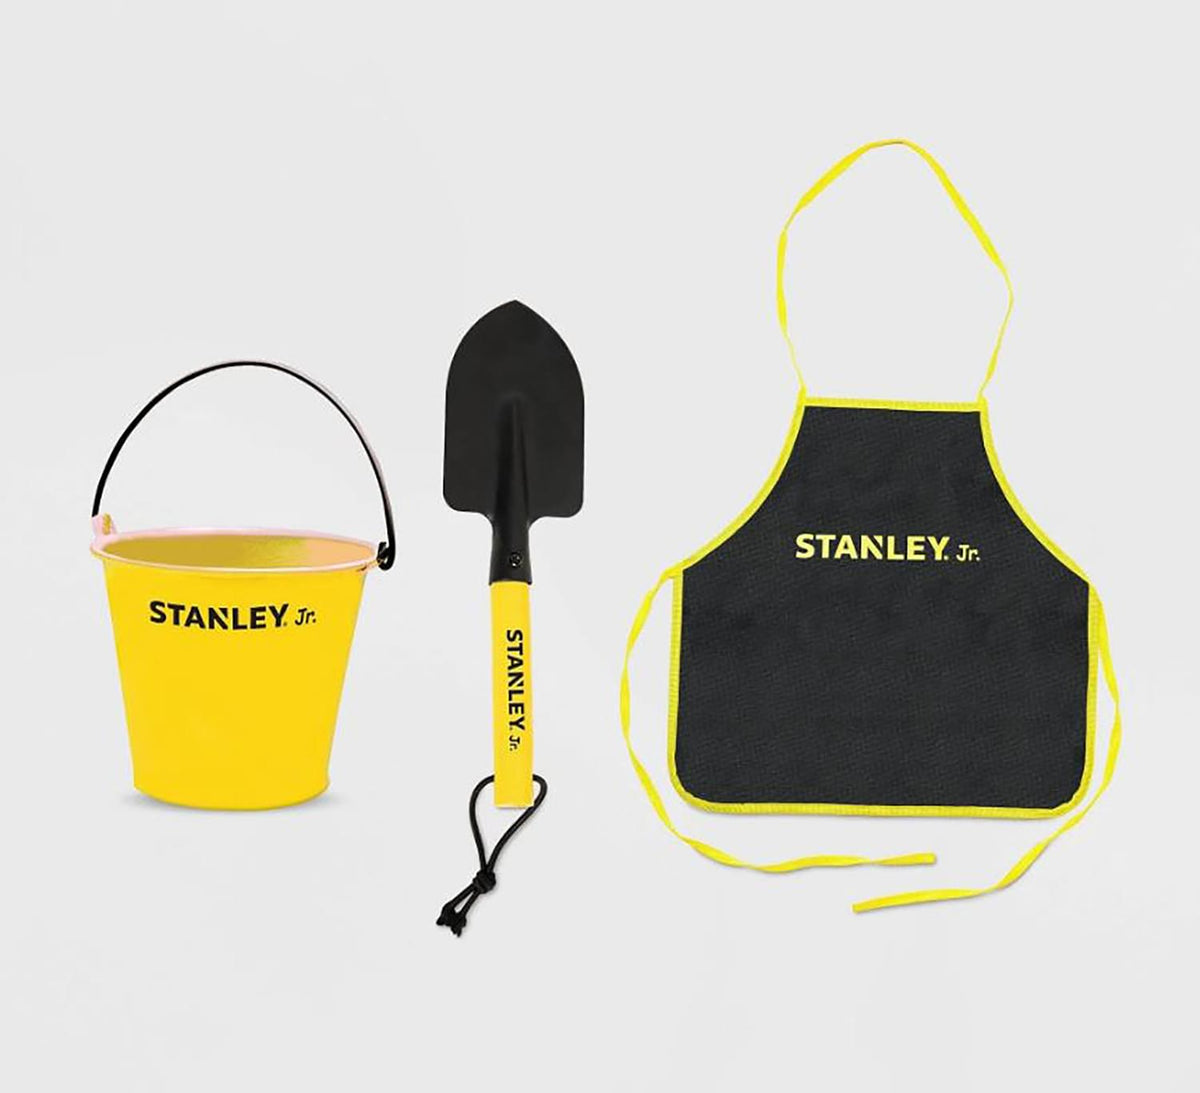 Stanley Jr. 3 Piece Garden Tool Set | Real Tools for Kids